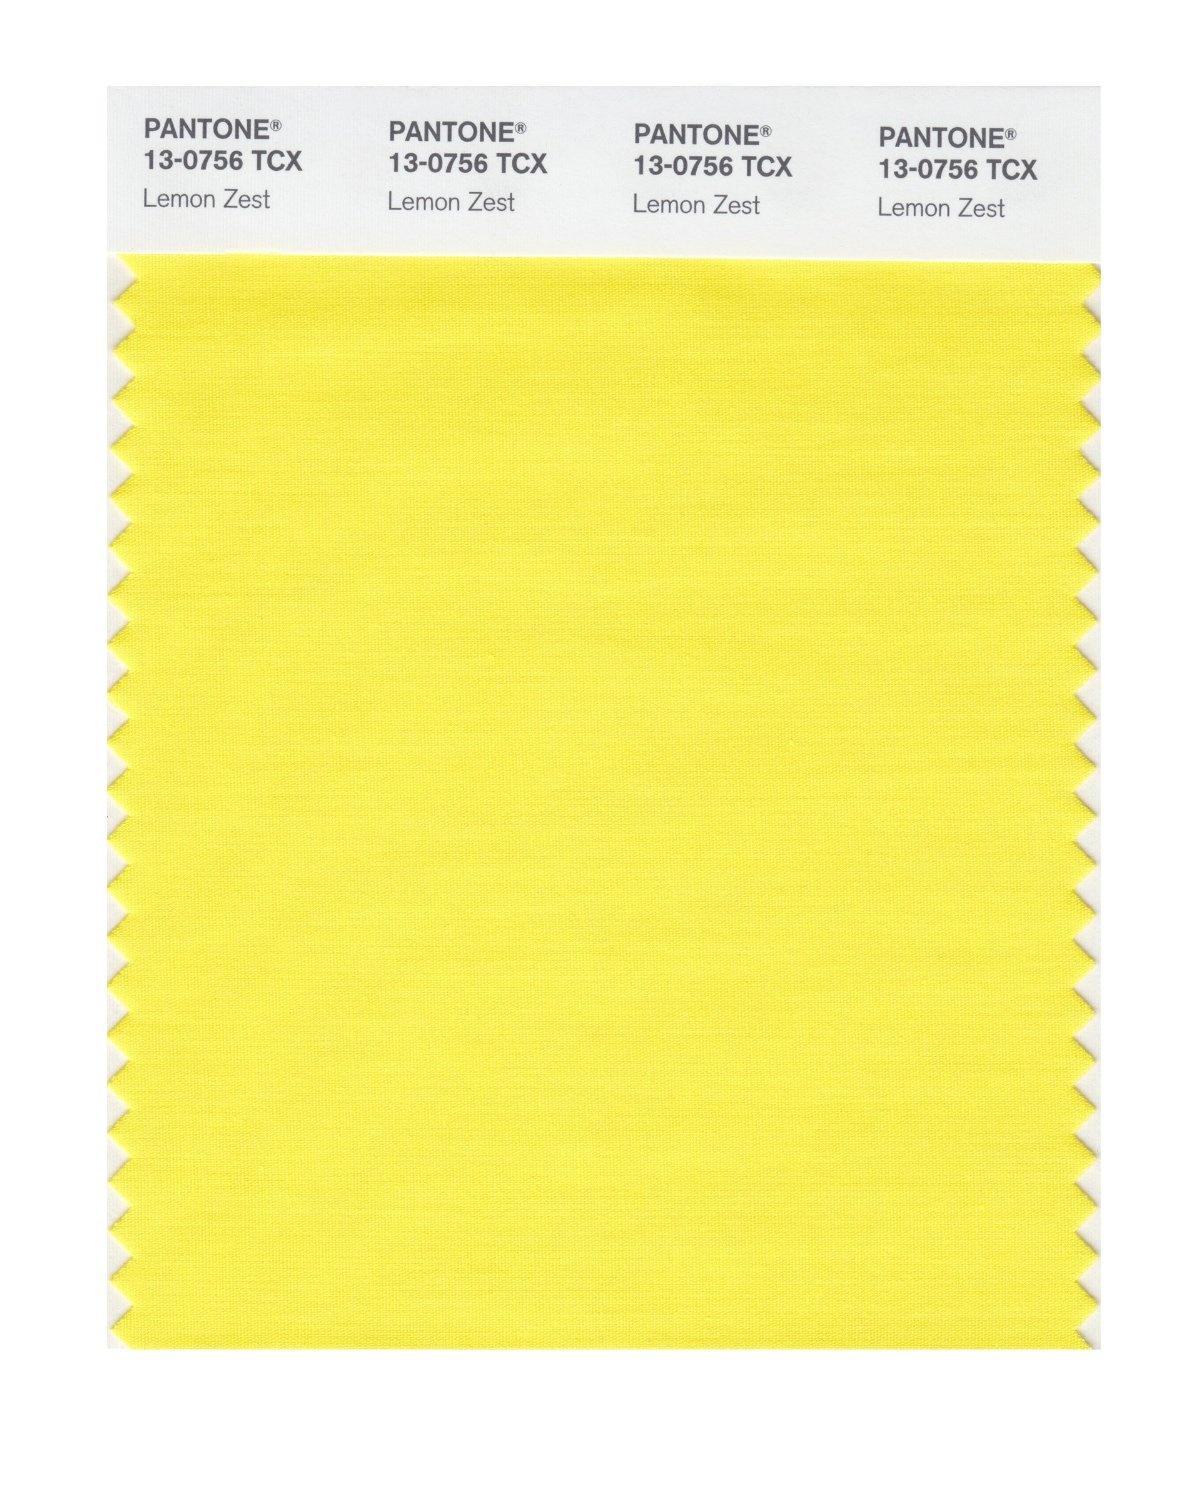 Pantone Smart Swatch 13-0756 Lemon Zest